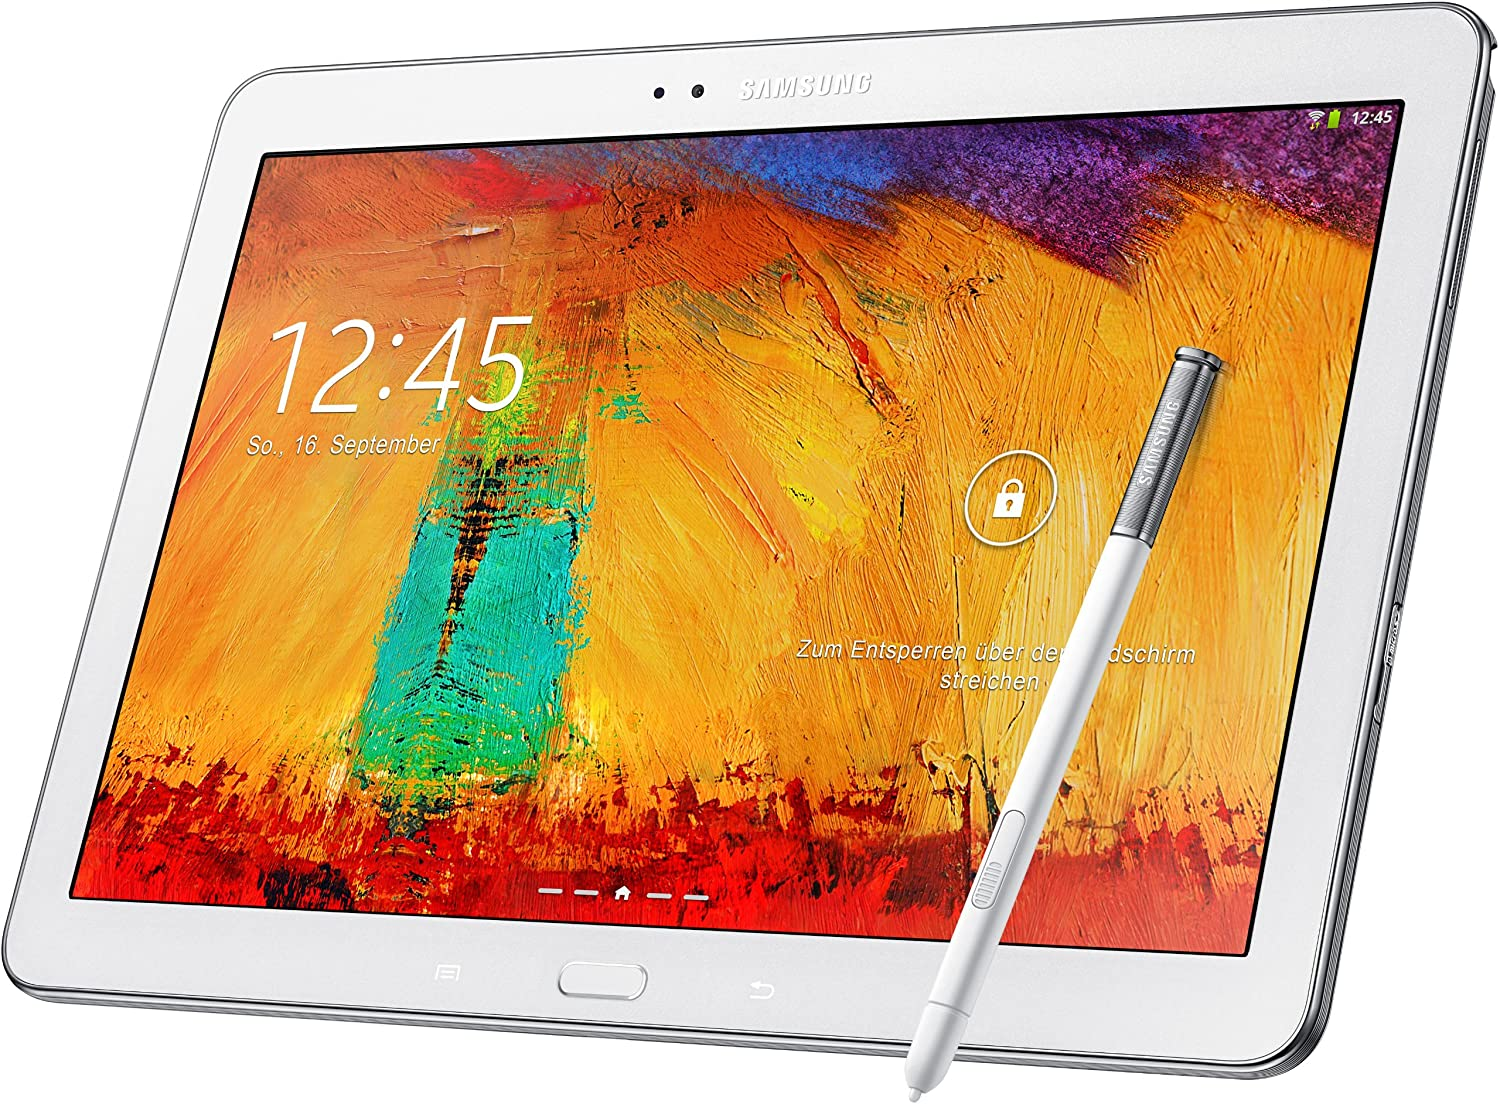 Samsung Galaxy Note 10.1 p605 2014 Edition